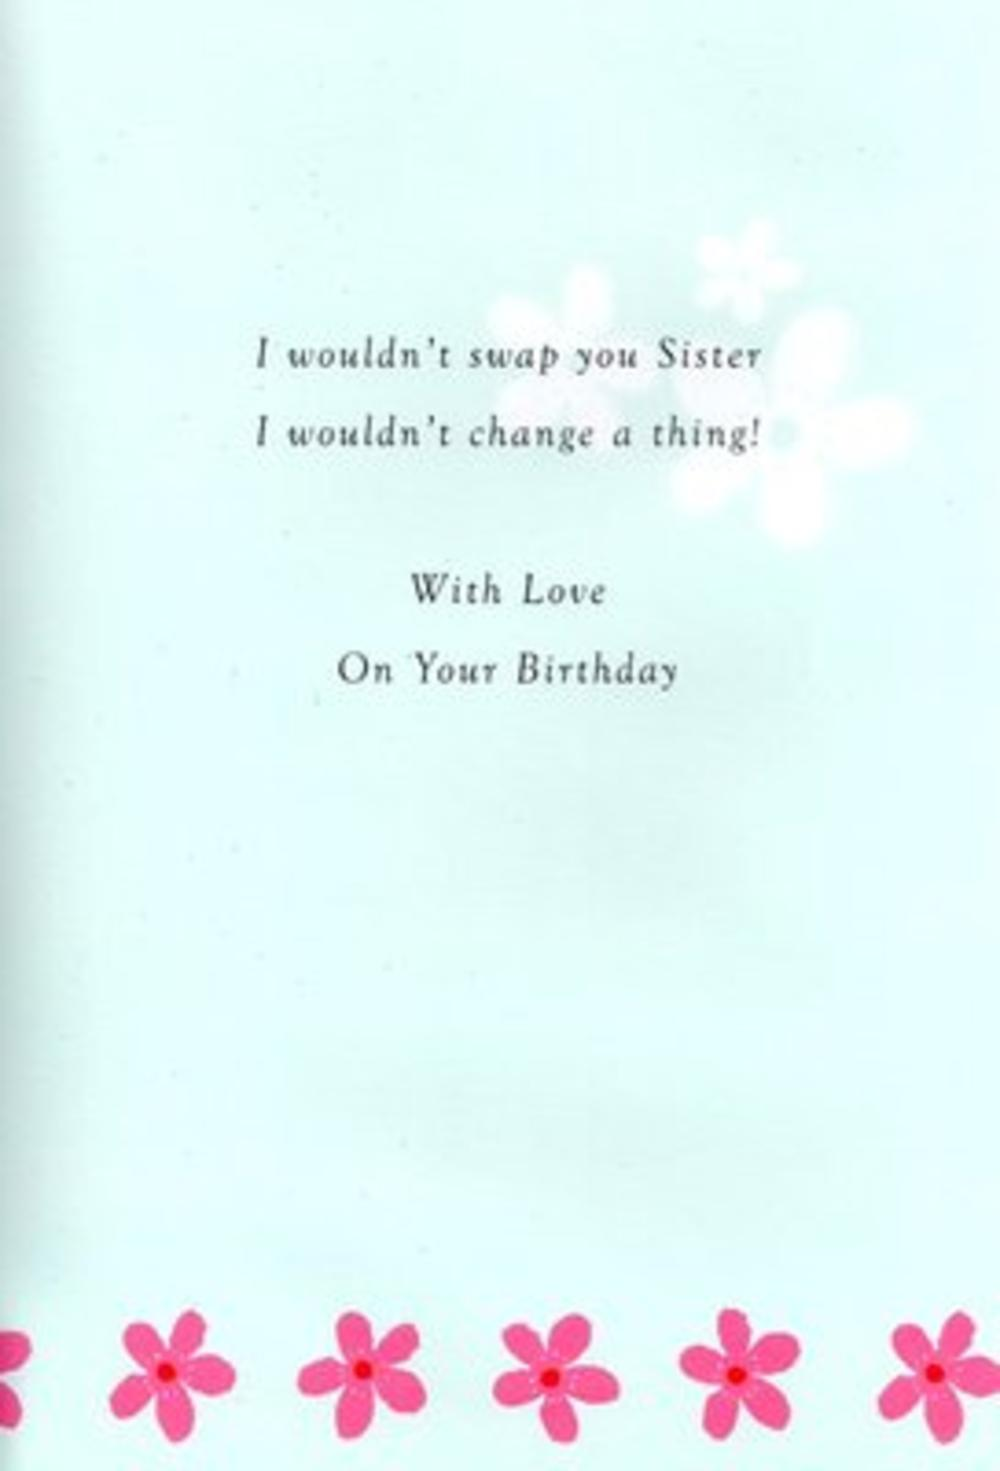 sister birthday poetry in motion card cards love kates